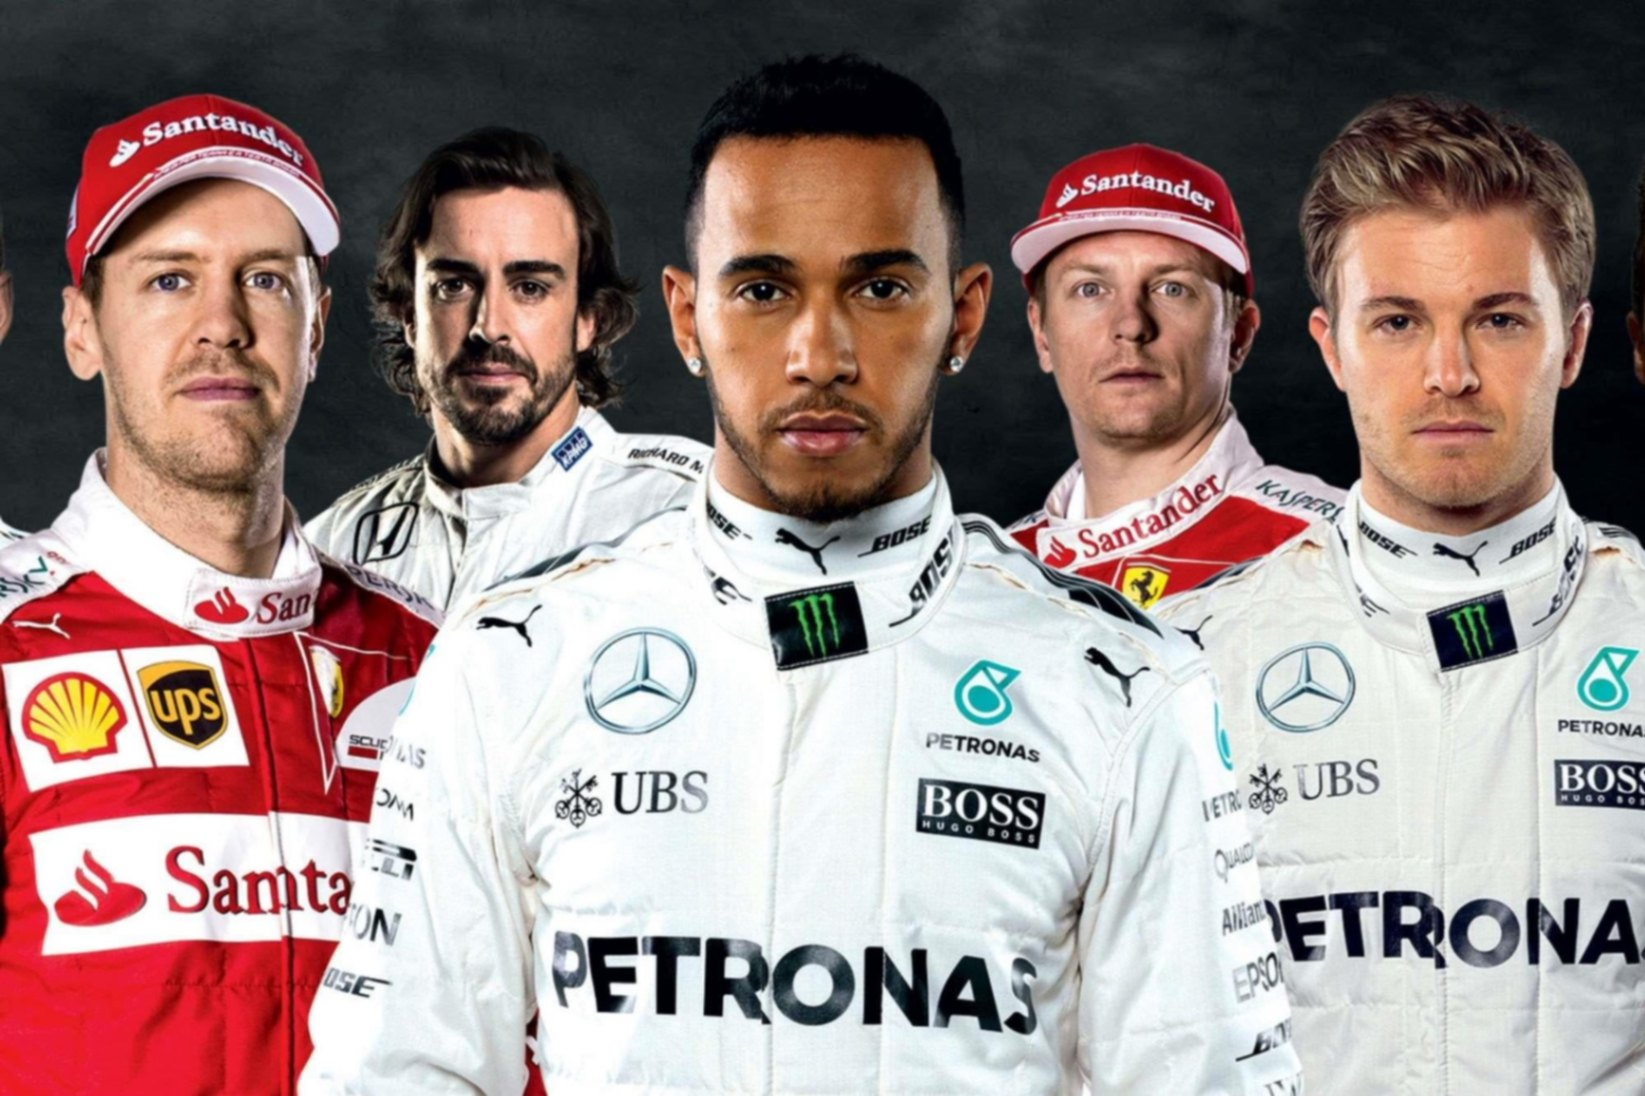 Discover the Highest Paid Auto Racing Drivers in the World